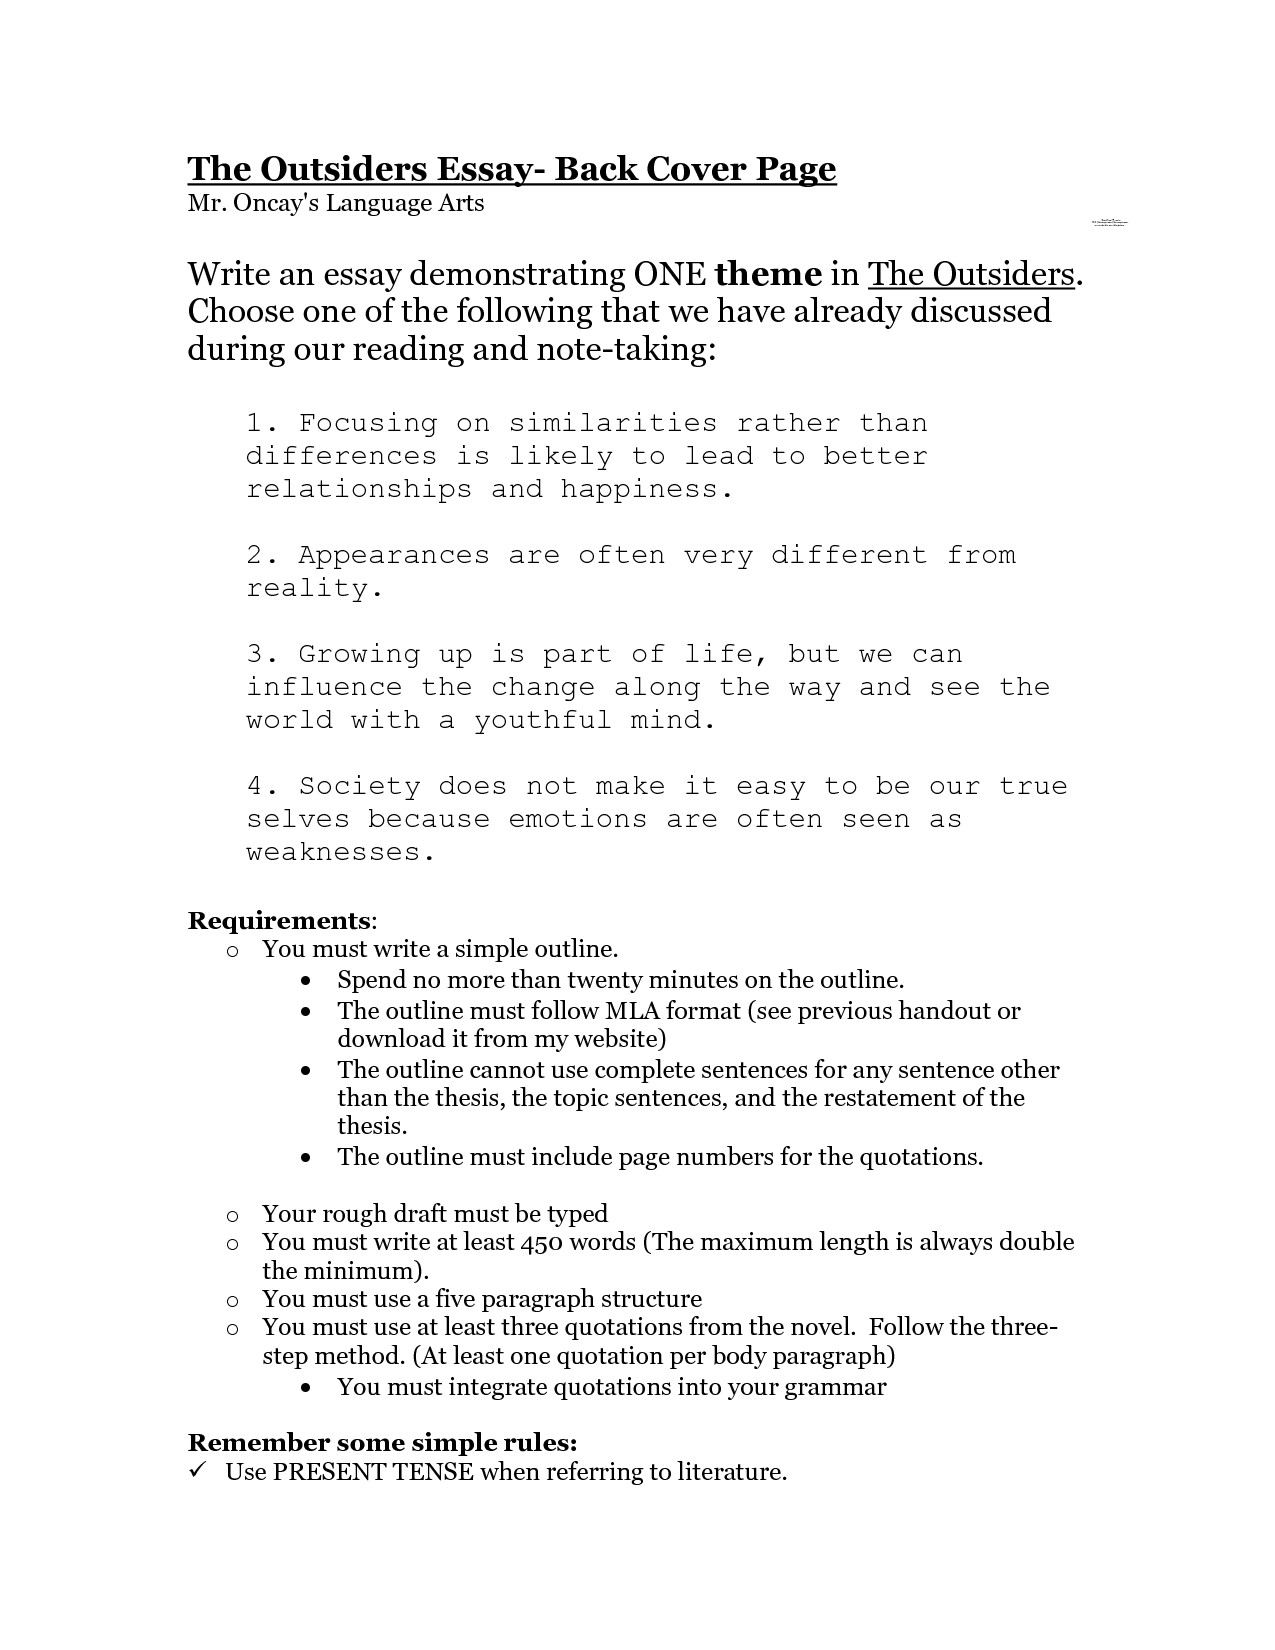 outsider story essay However when the role of the outsider is introduced, it influences the characters greatly and brings conflict to the story plot  10 the outsiders essay.